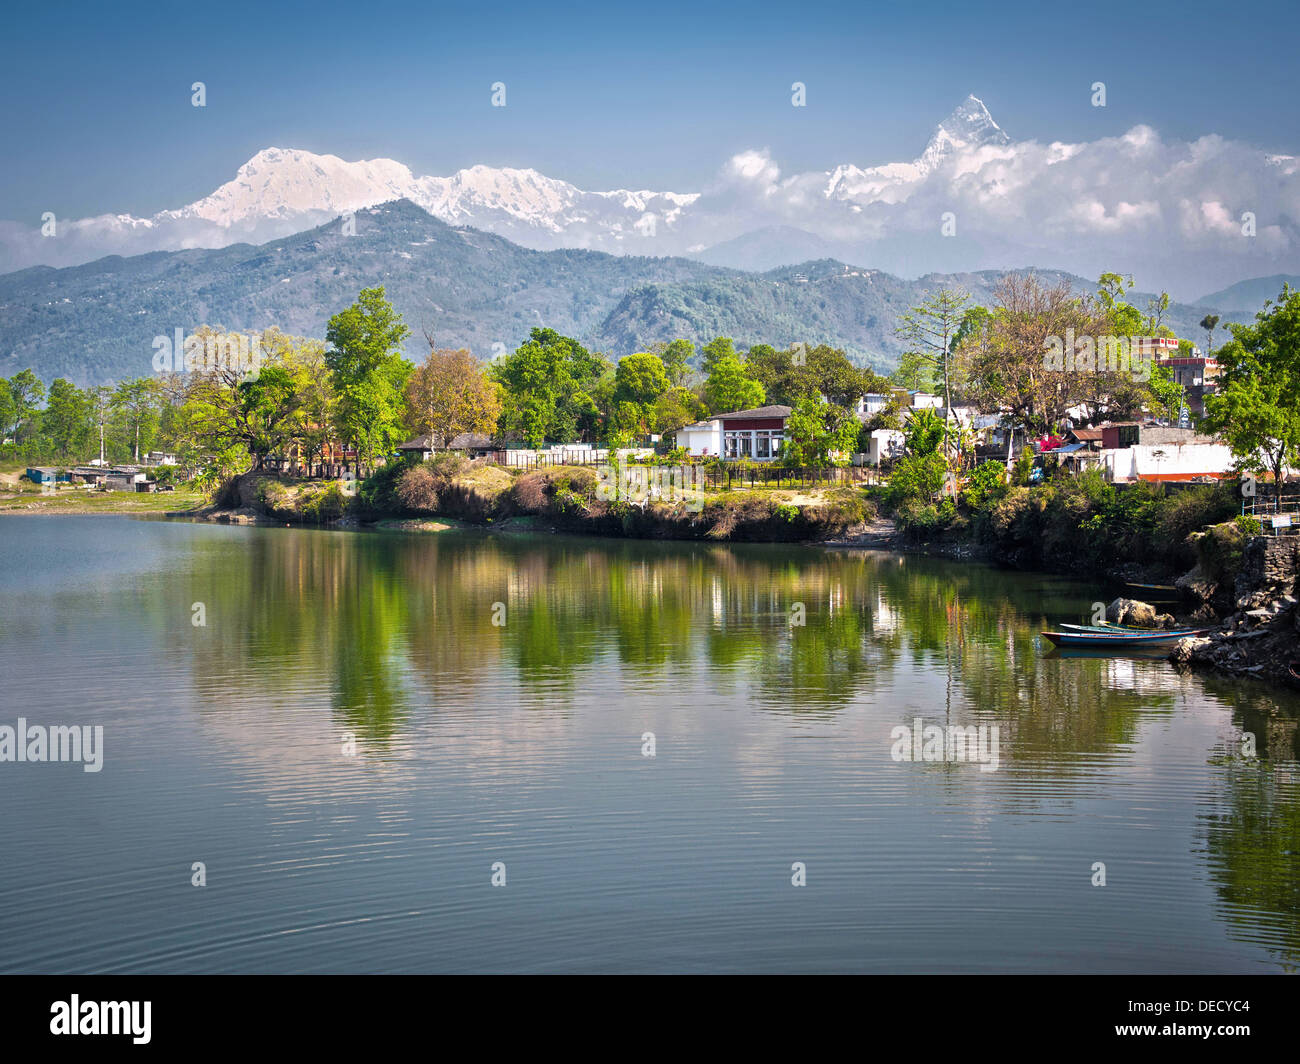 The snowed peak of sacred Machapuchare seen from Pokhara, Nepal. - Stock Image